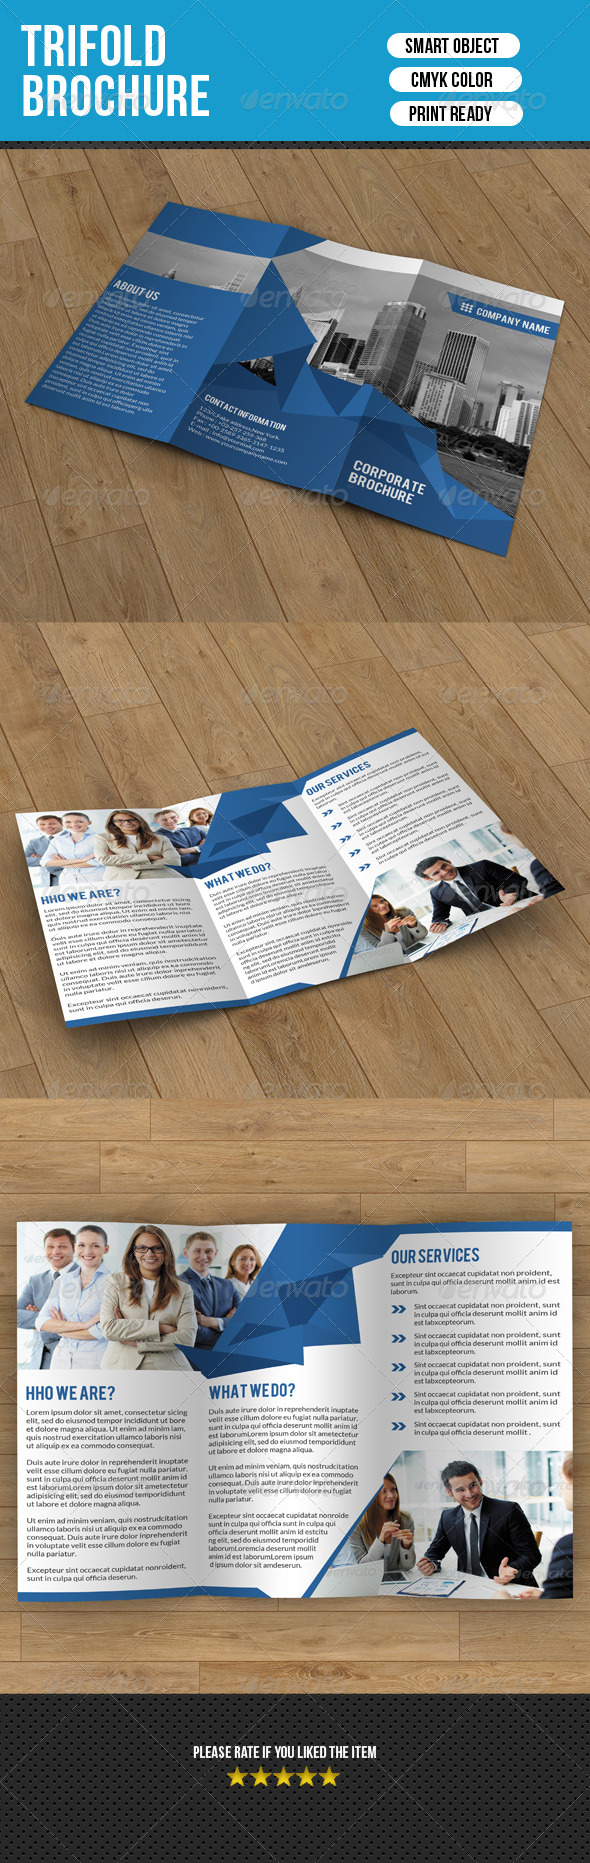 Trifold Brochure-Business - Corporate Brochures